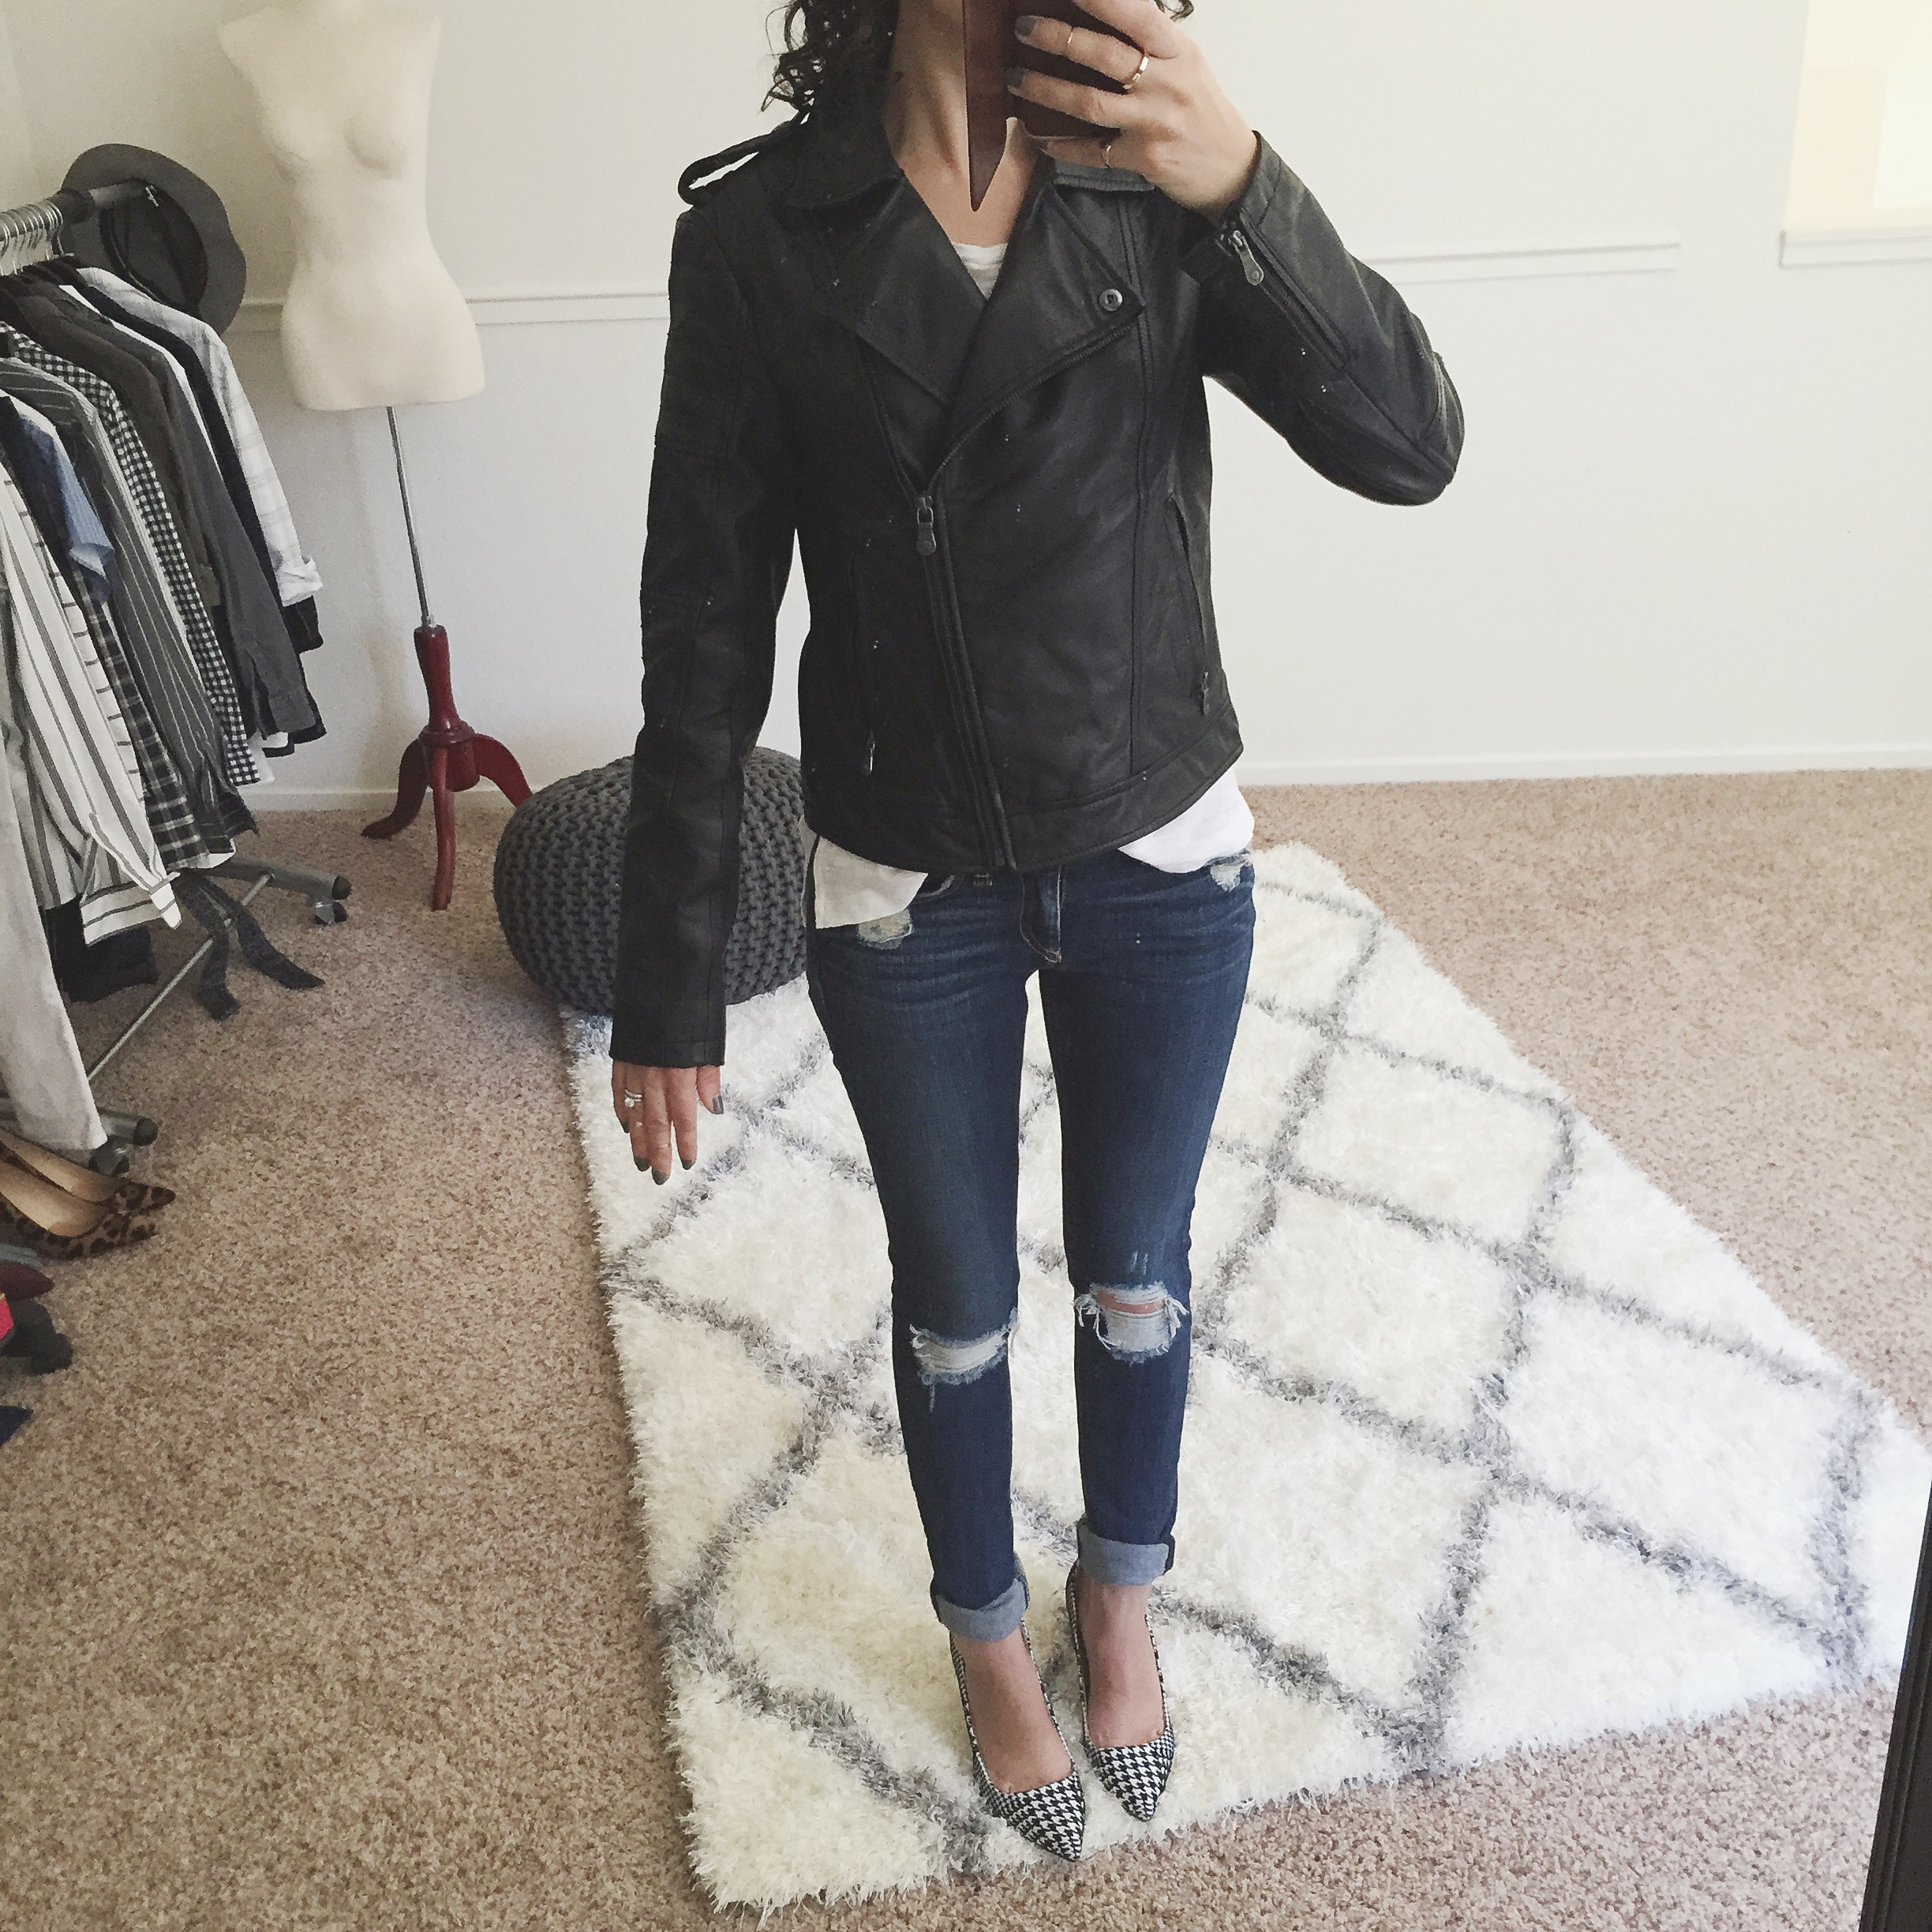 Fit Review Friday - Petite Leather Jacket | Alterations Needed